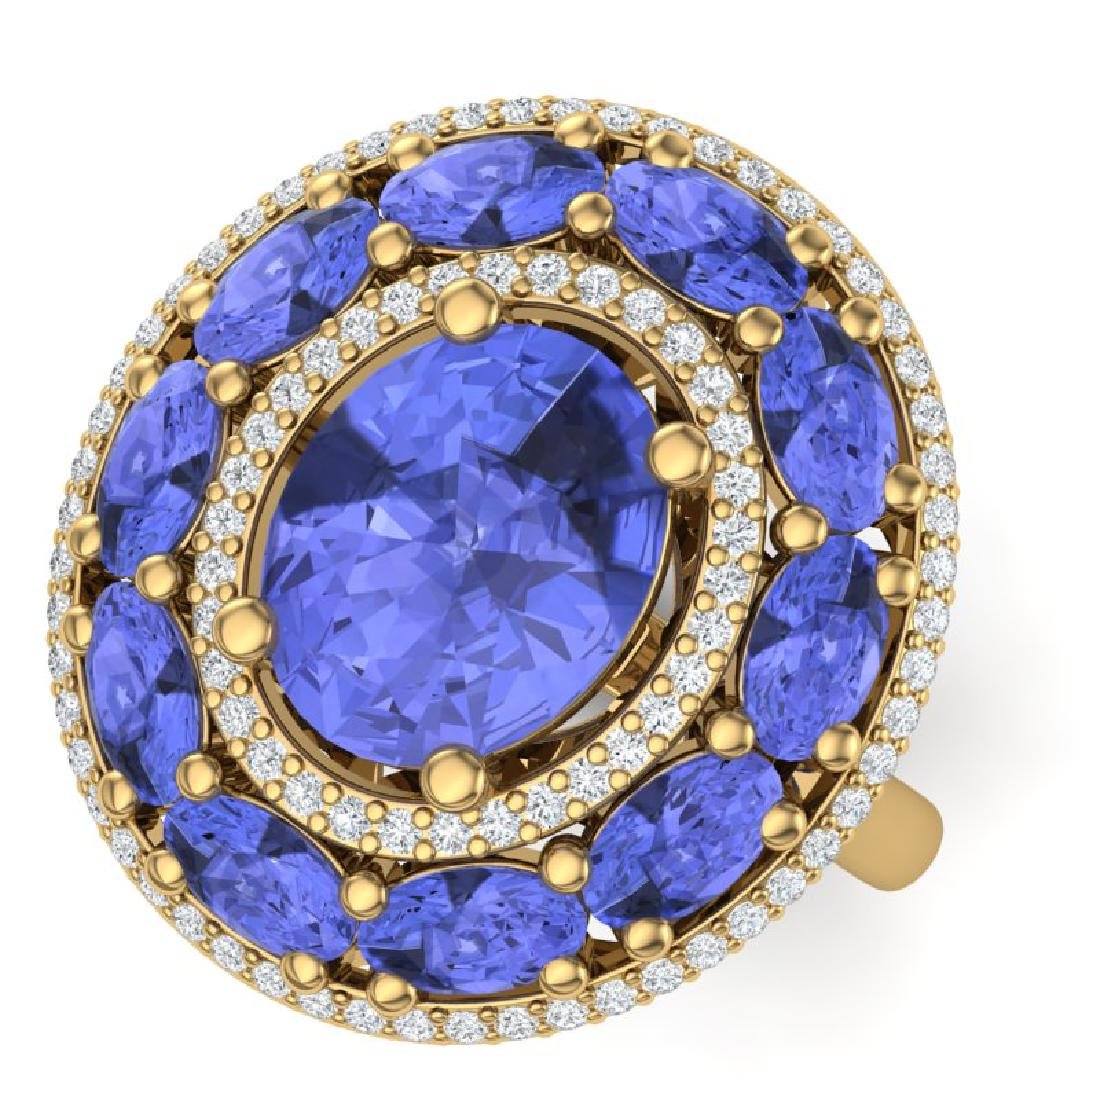 8.49 CTW Royalty Tanzanite & VS Diamond Ring 18K Yellow